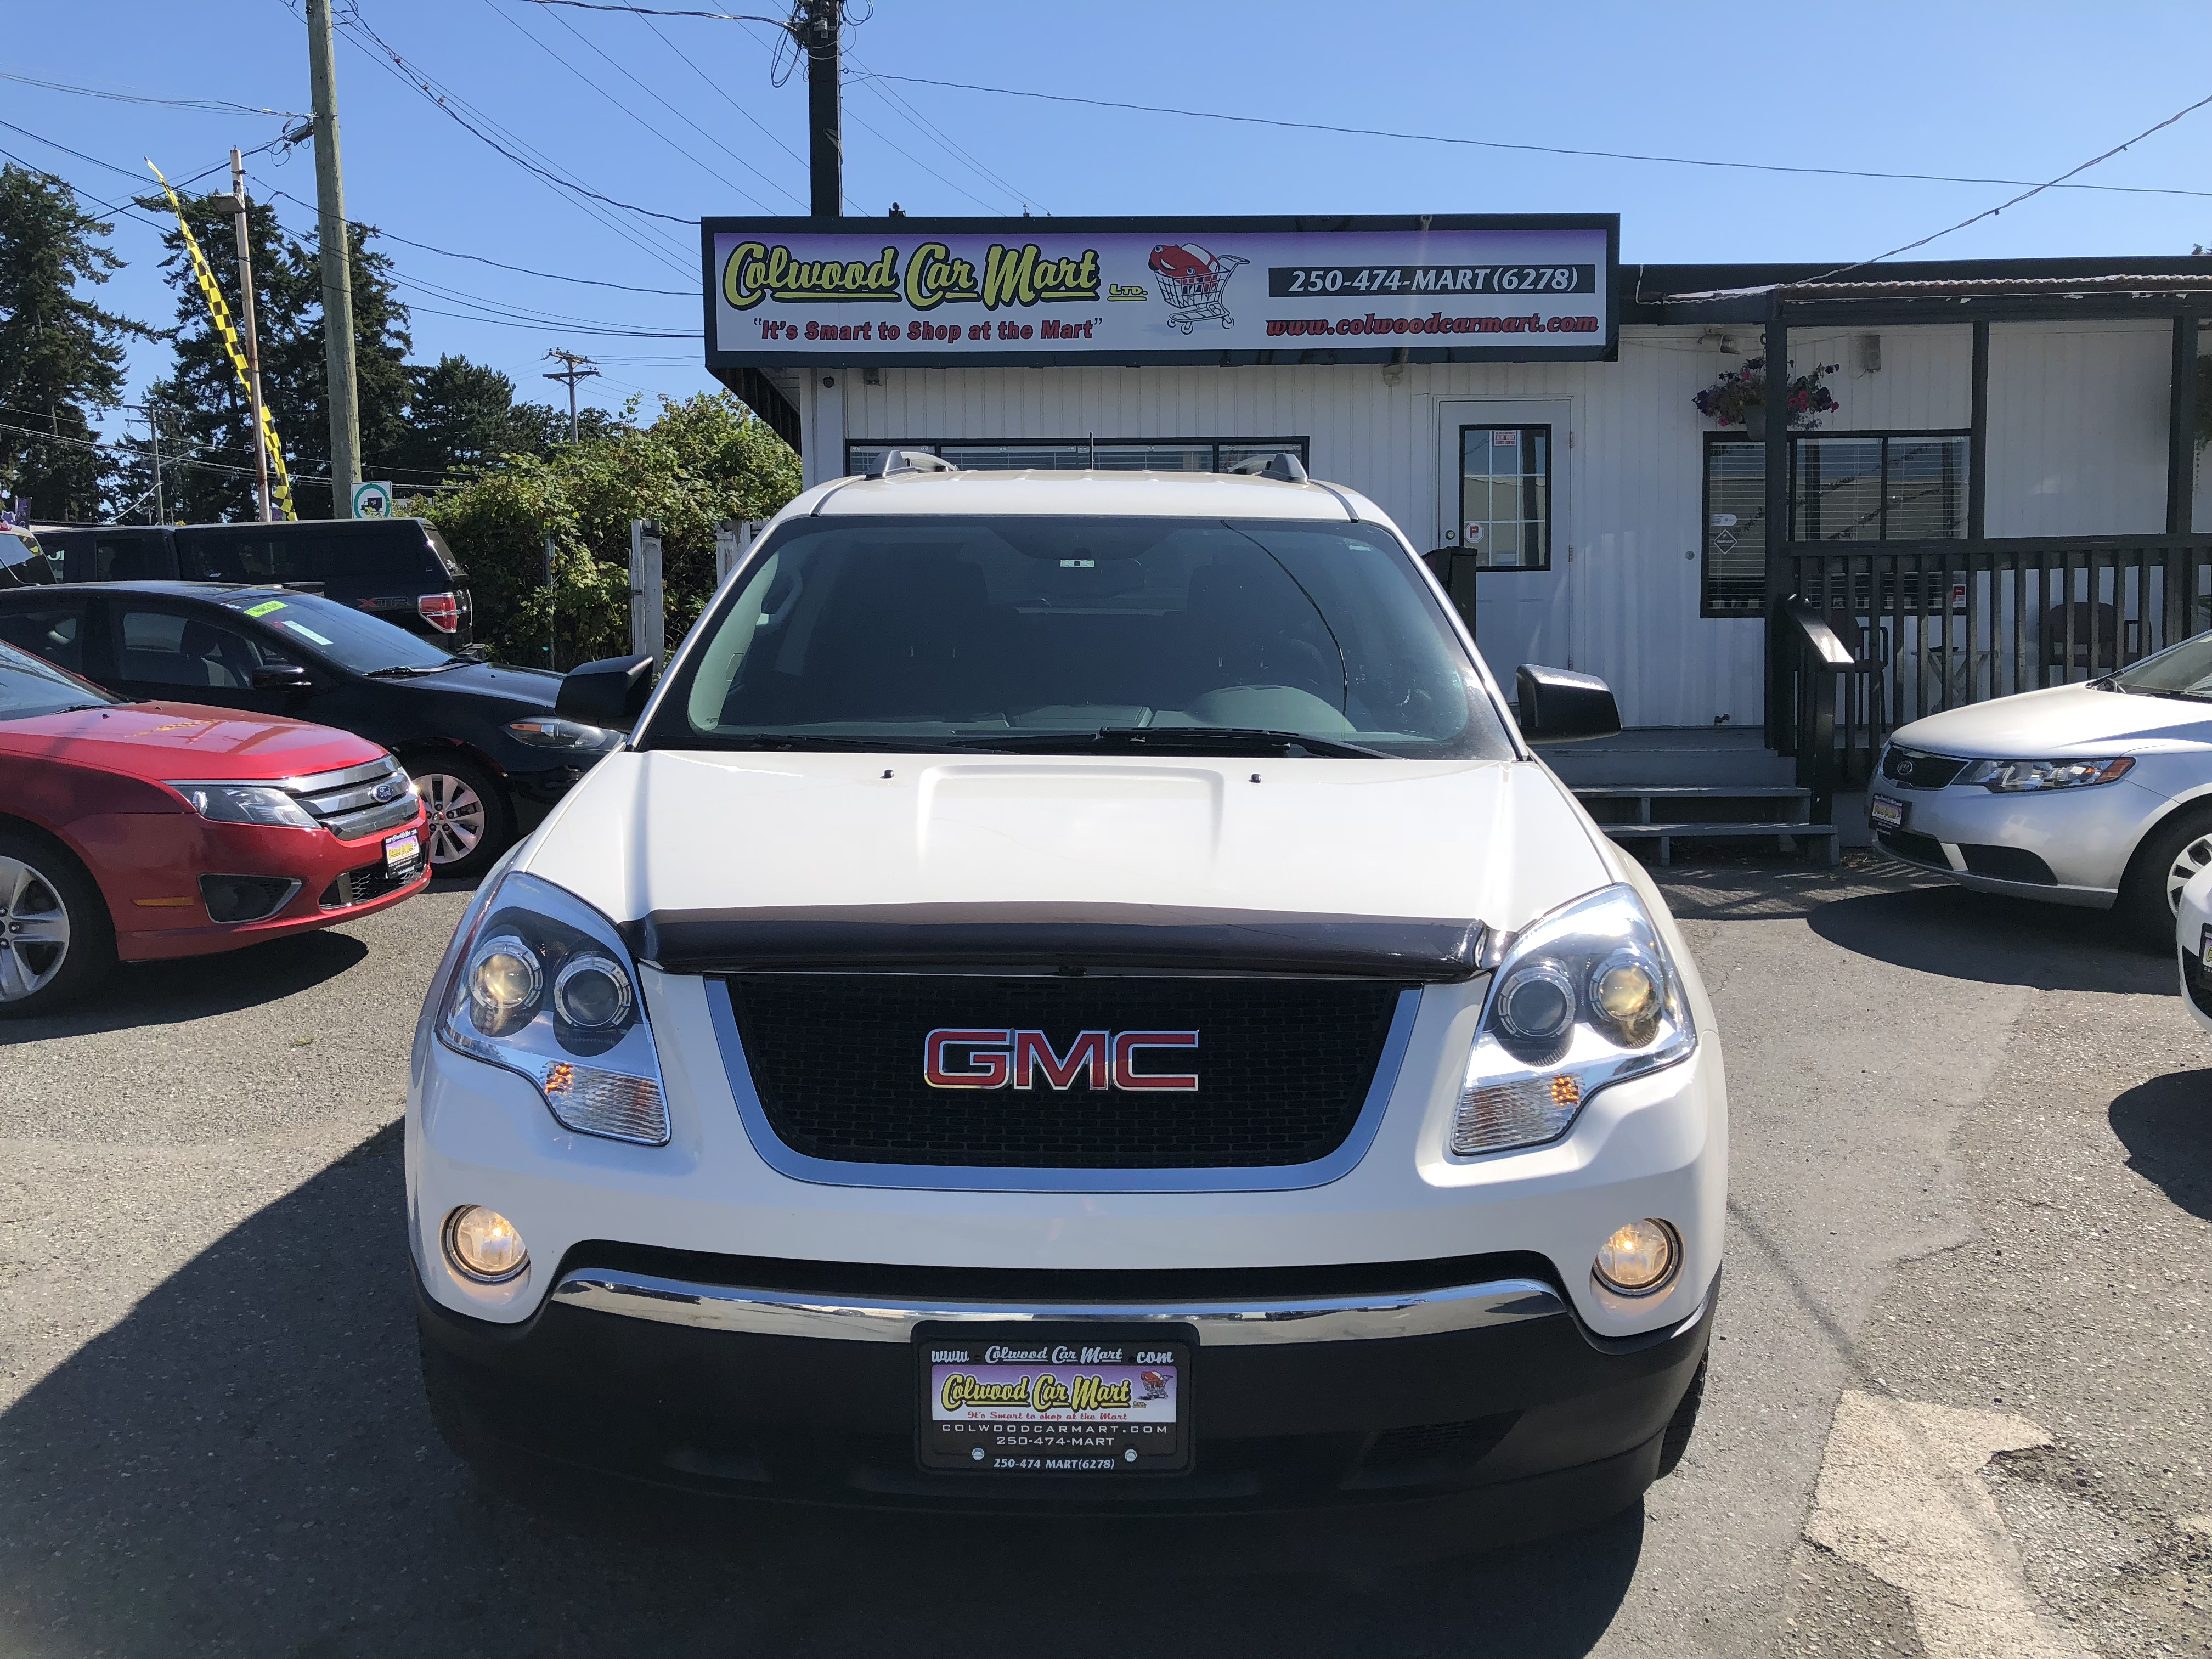 2012 gmc acadia awd – colwood cart mart used cars trucks for sale victoria bc used car dealer